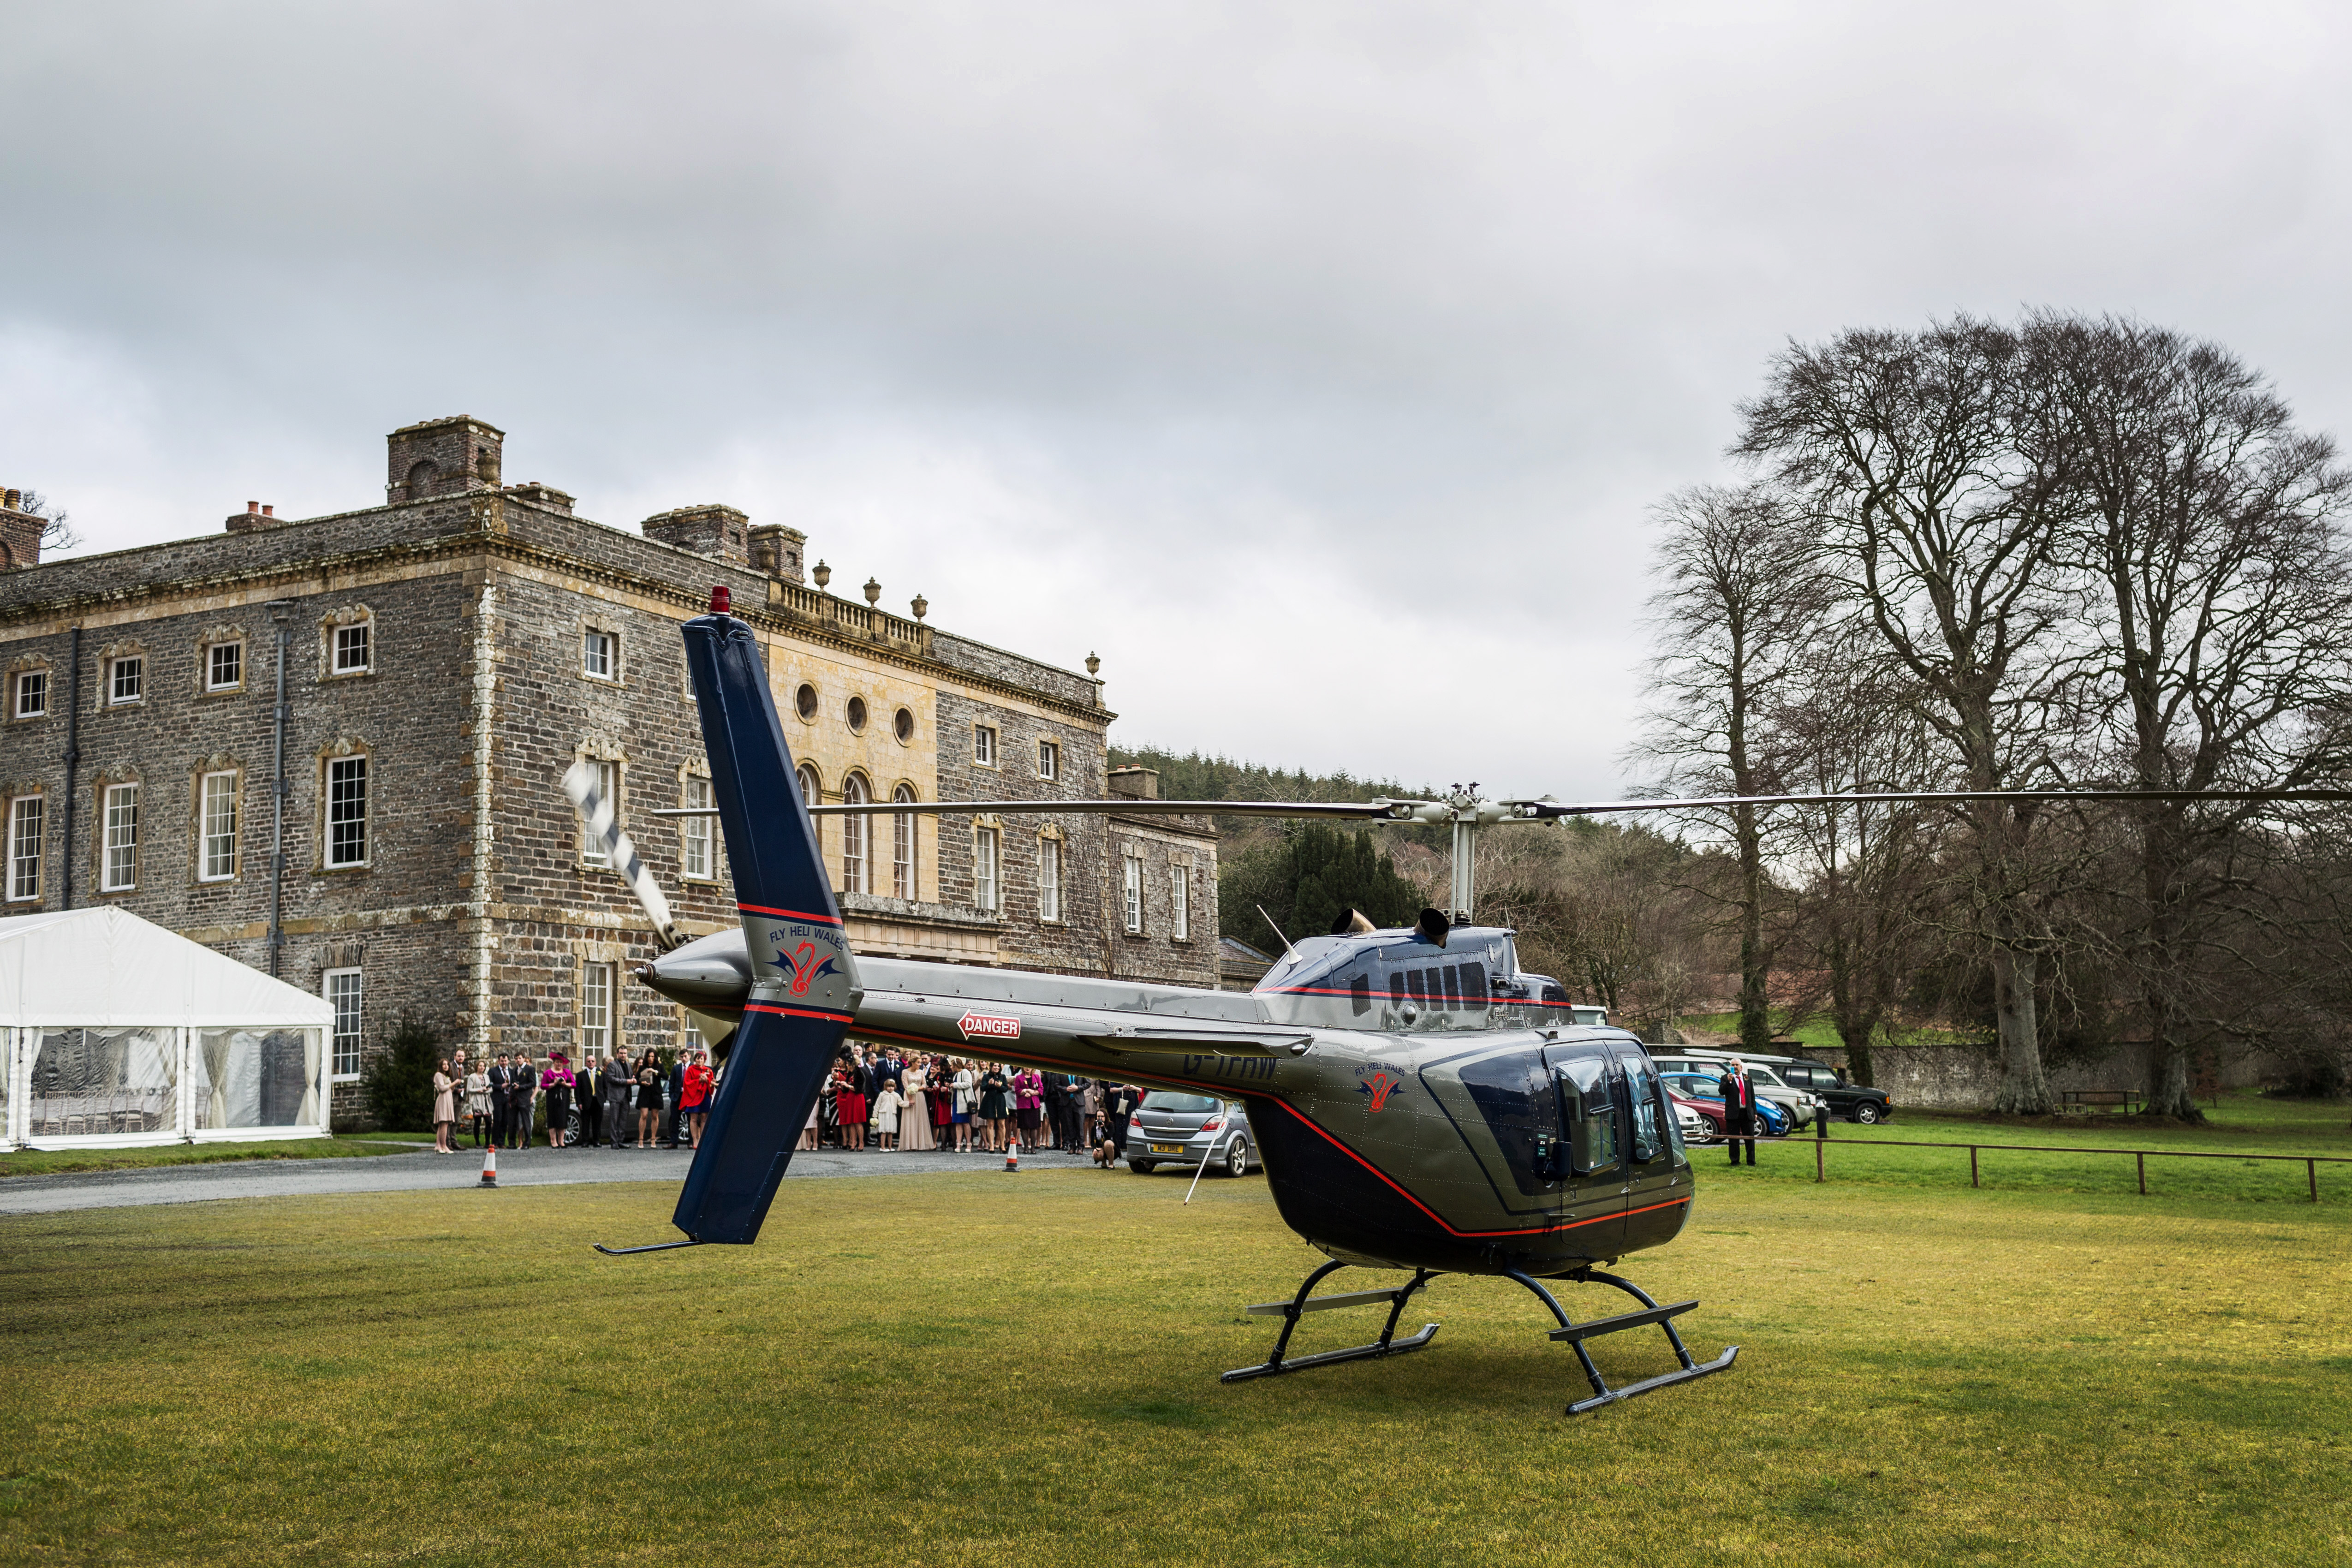 Nanteos wedding marquee with helicopter